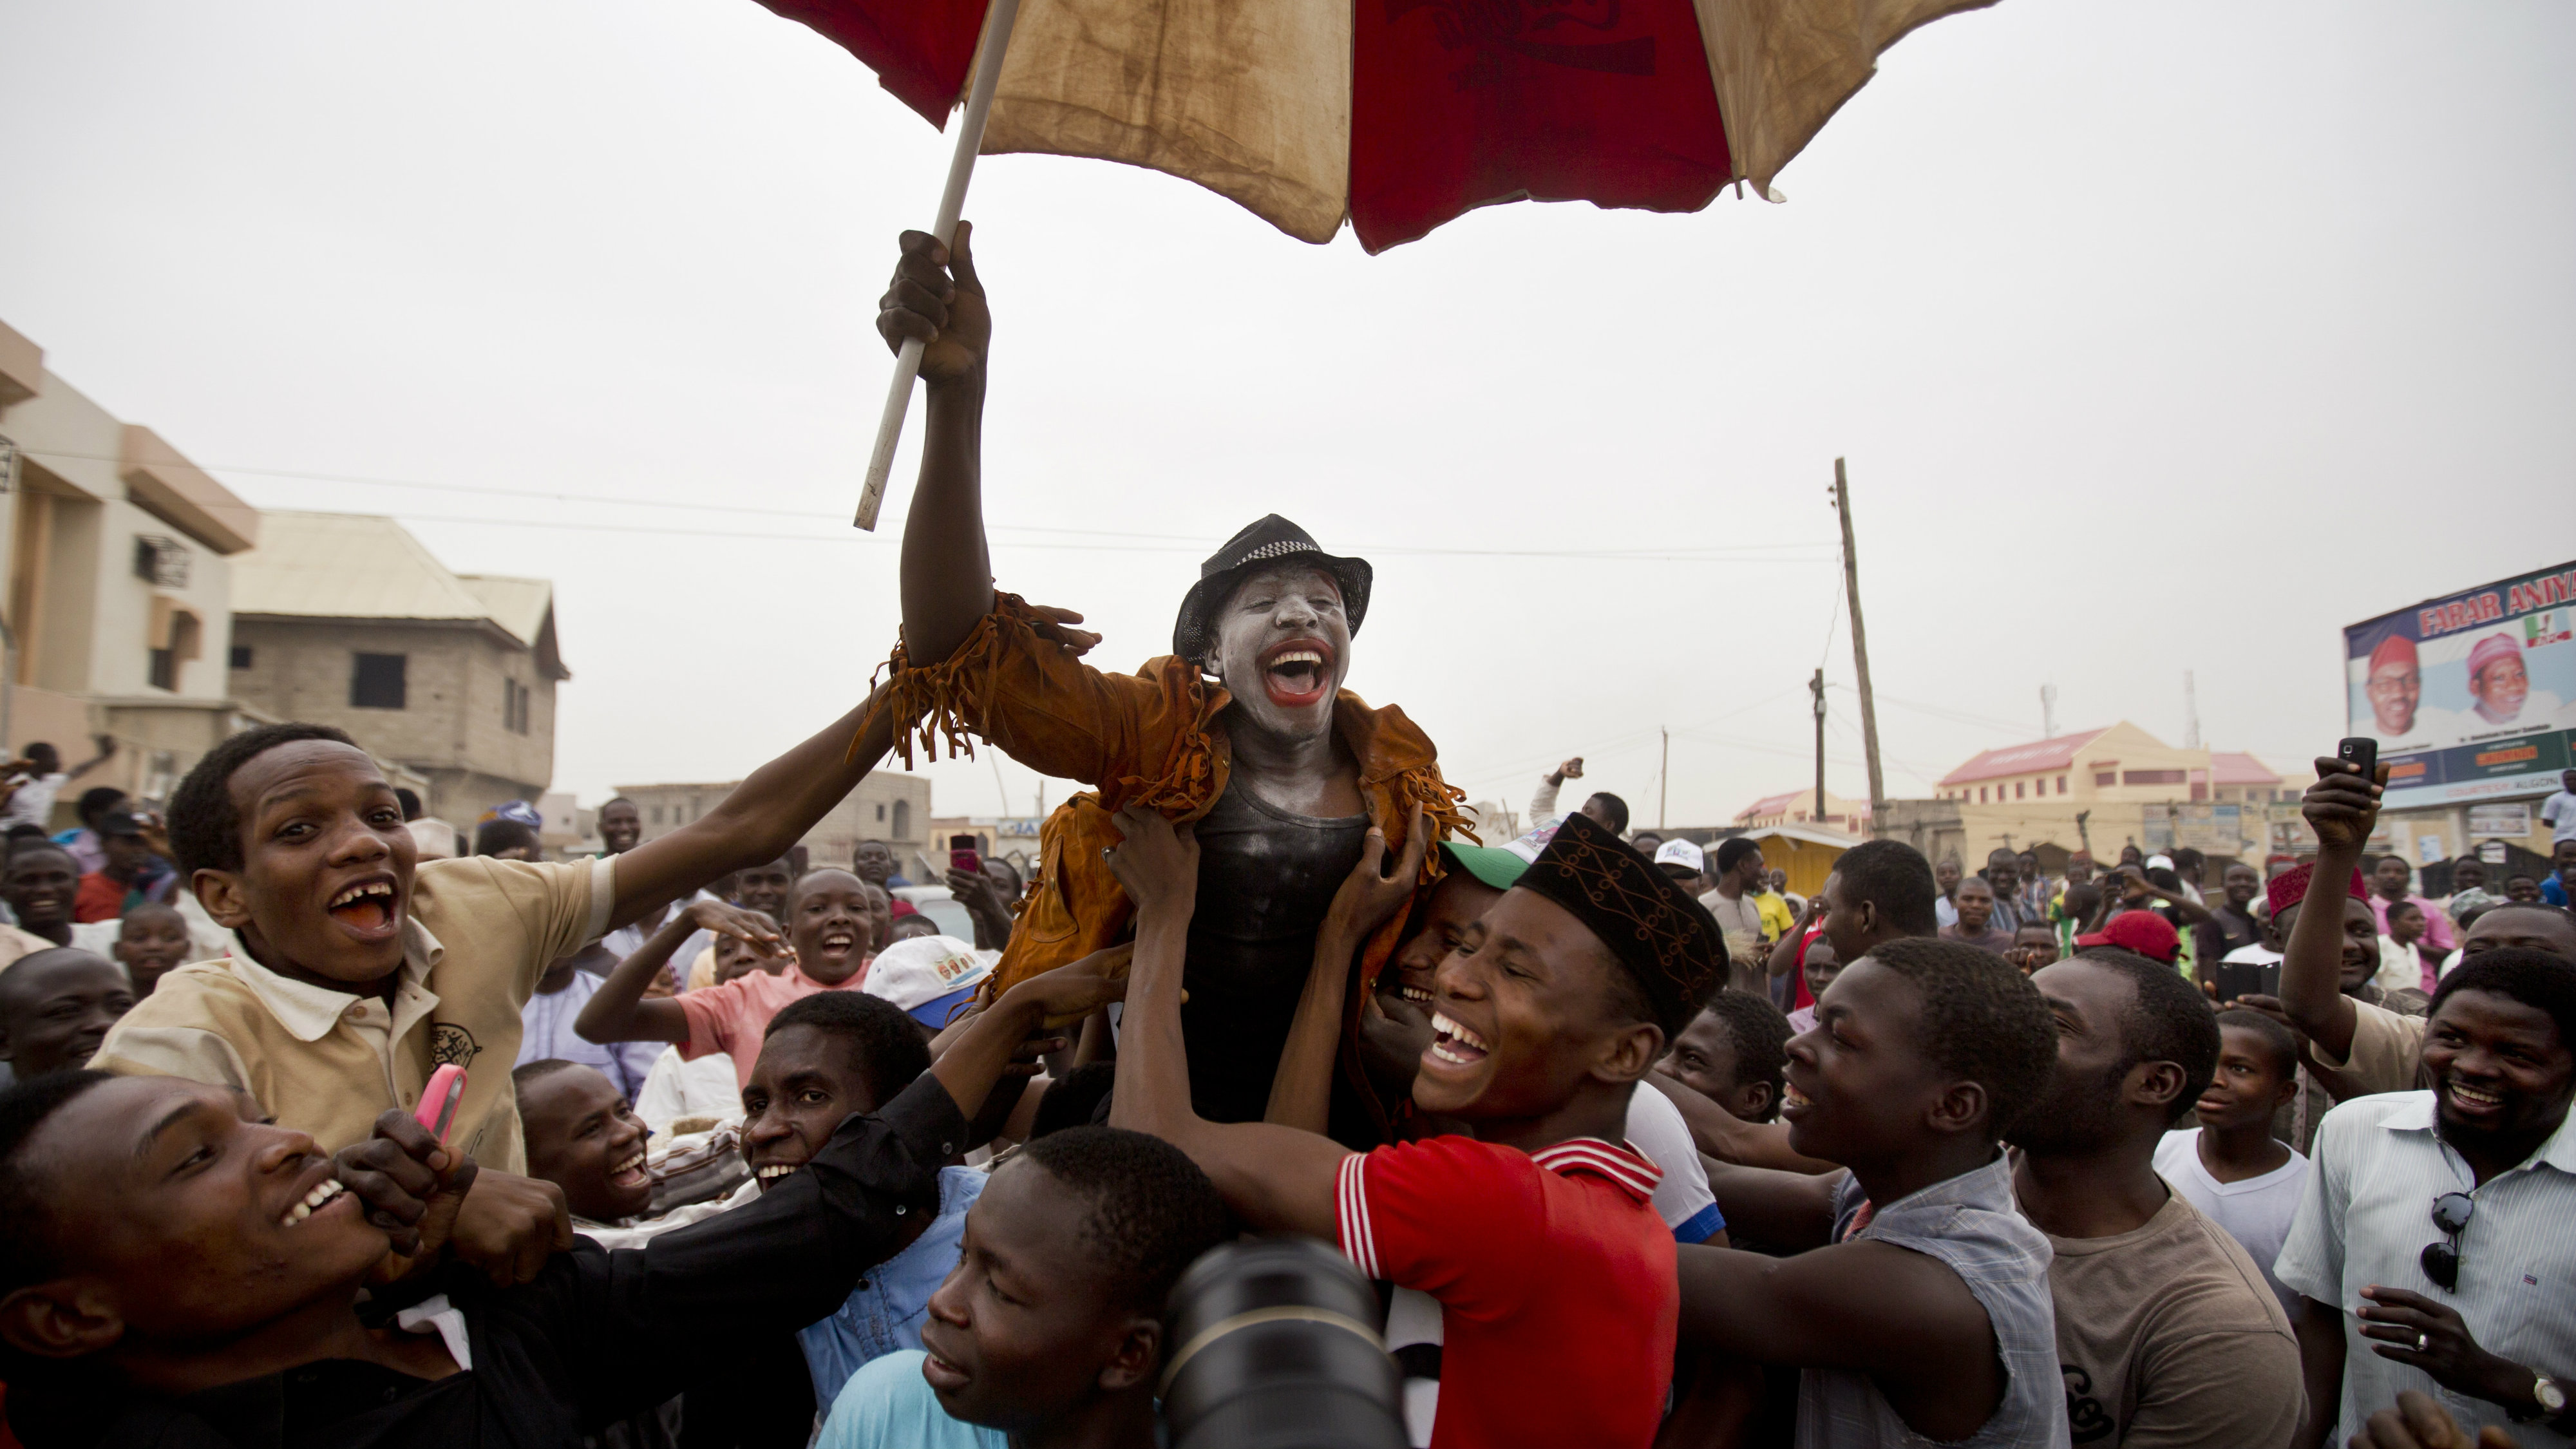 A supporter of opposition candidate Muhammadu Buhari, center, who is dressed up to represent and mock current President Goodluck Jonathan, celebrates an anticipated win for his candidate, in Kano, northern Nigeria Tuesday, March 31, 2015. Amid anger over an Islamist insurgency that has claimed thousands of lives, Nigerians returned 72-year-old former military dictator Muhammadu Buhari to power Tuesday in the most hotly contested election in the country's history.